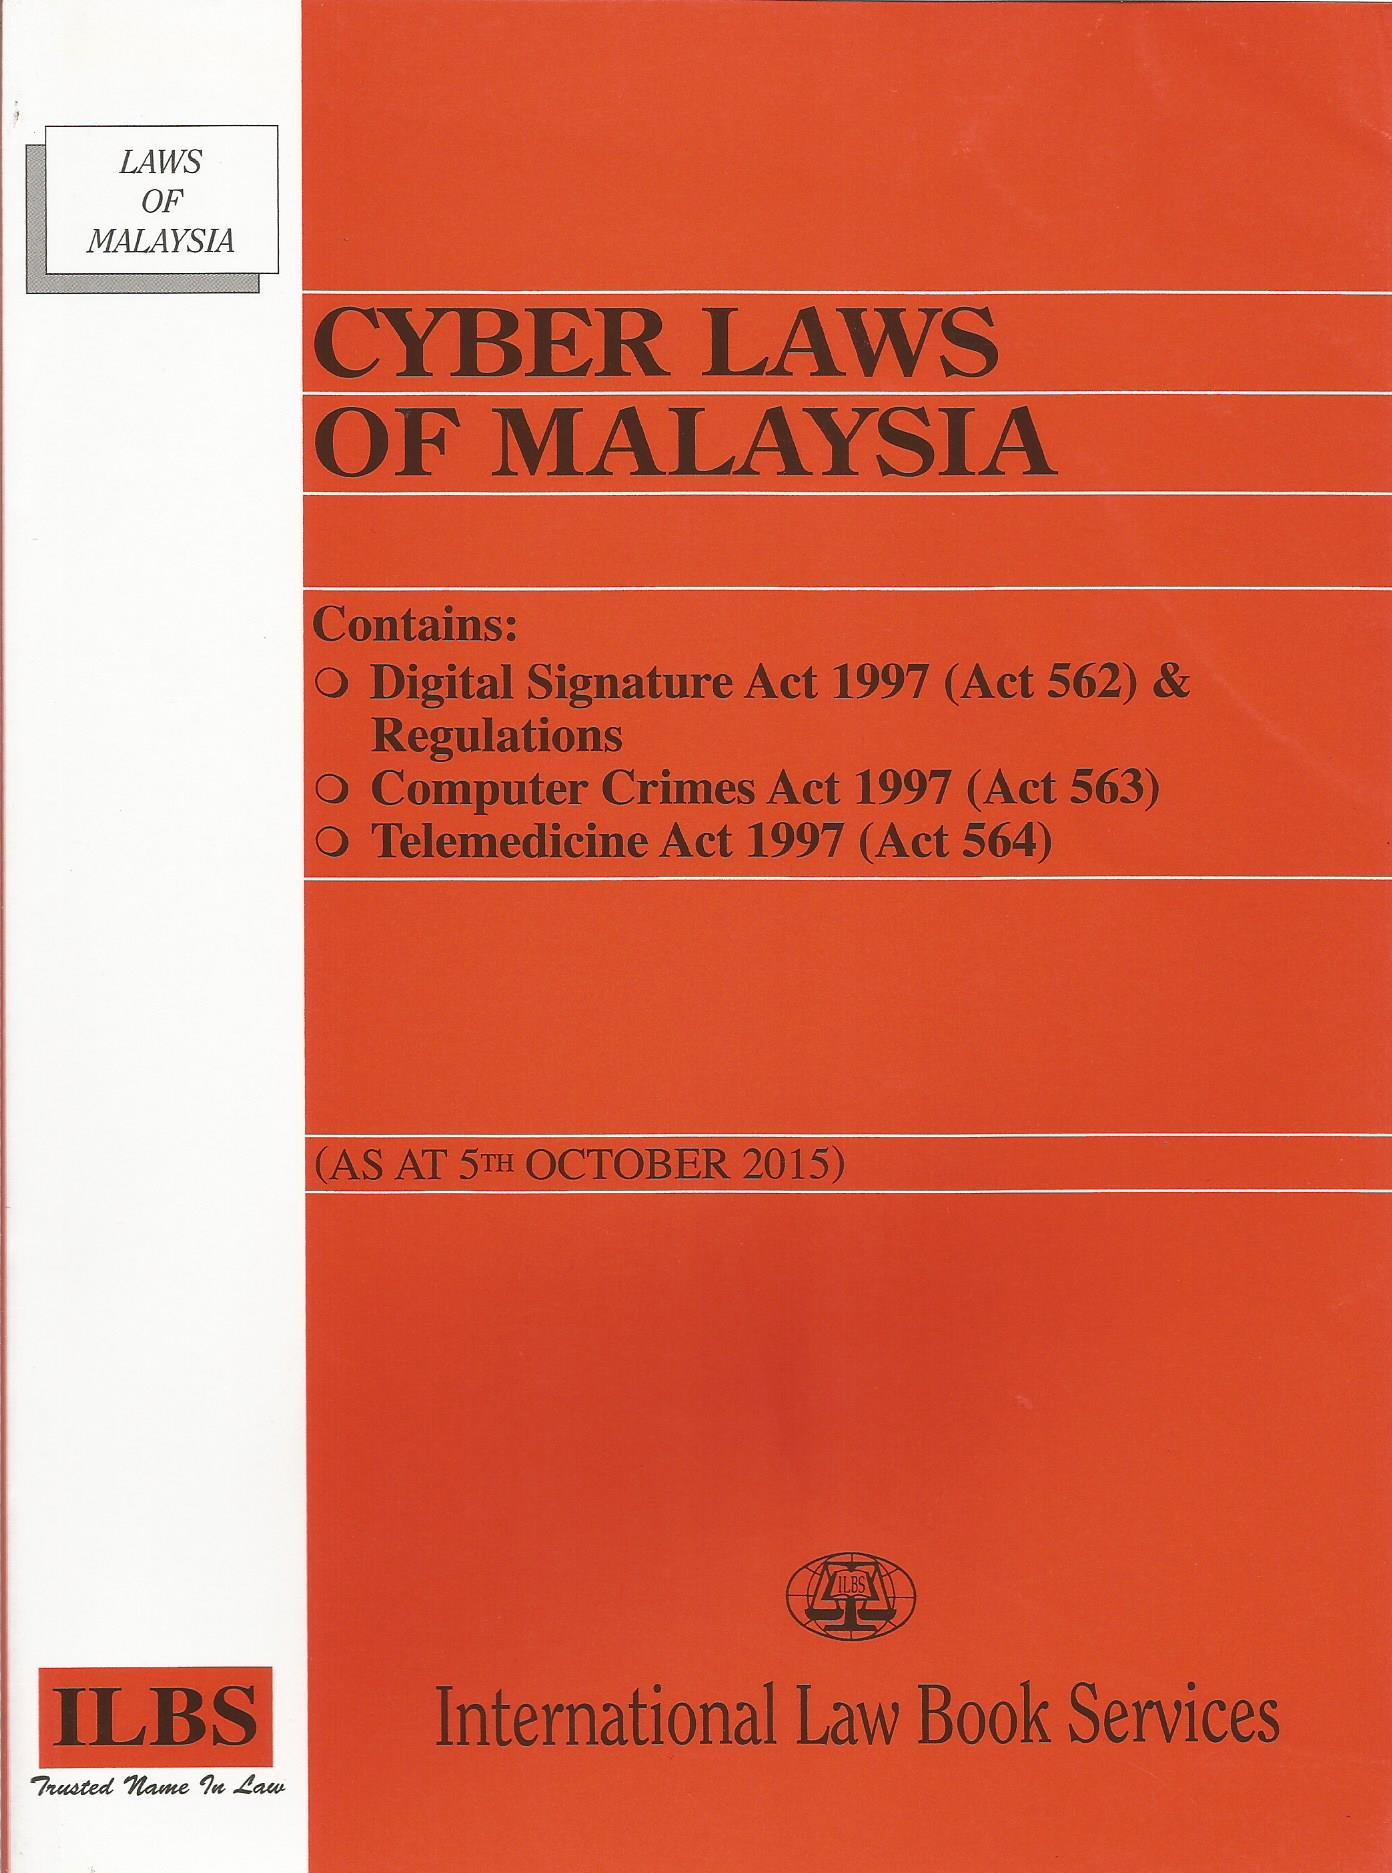 cyber laws of malaysia rm15 0.20001.jpg